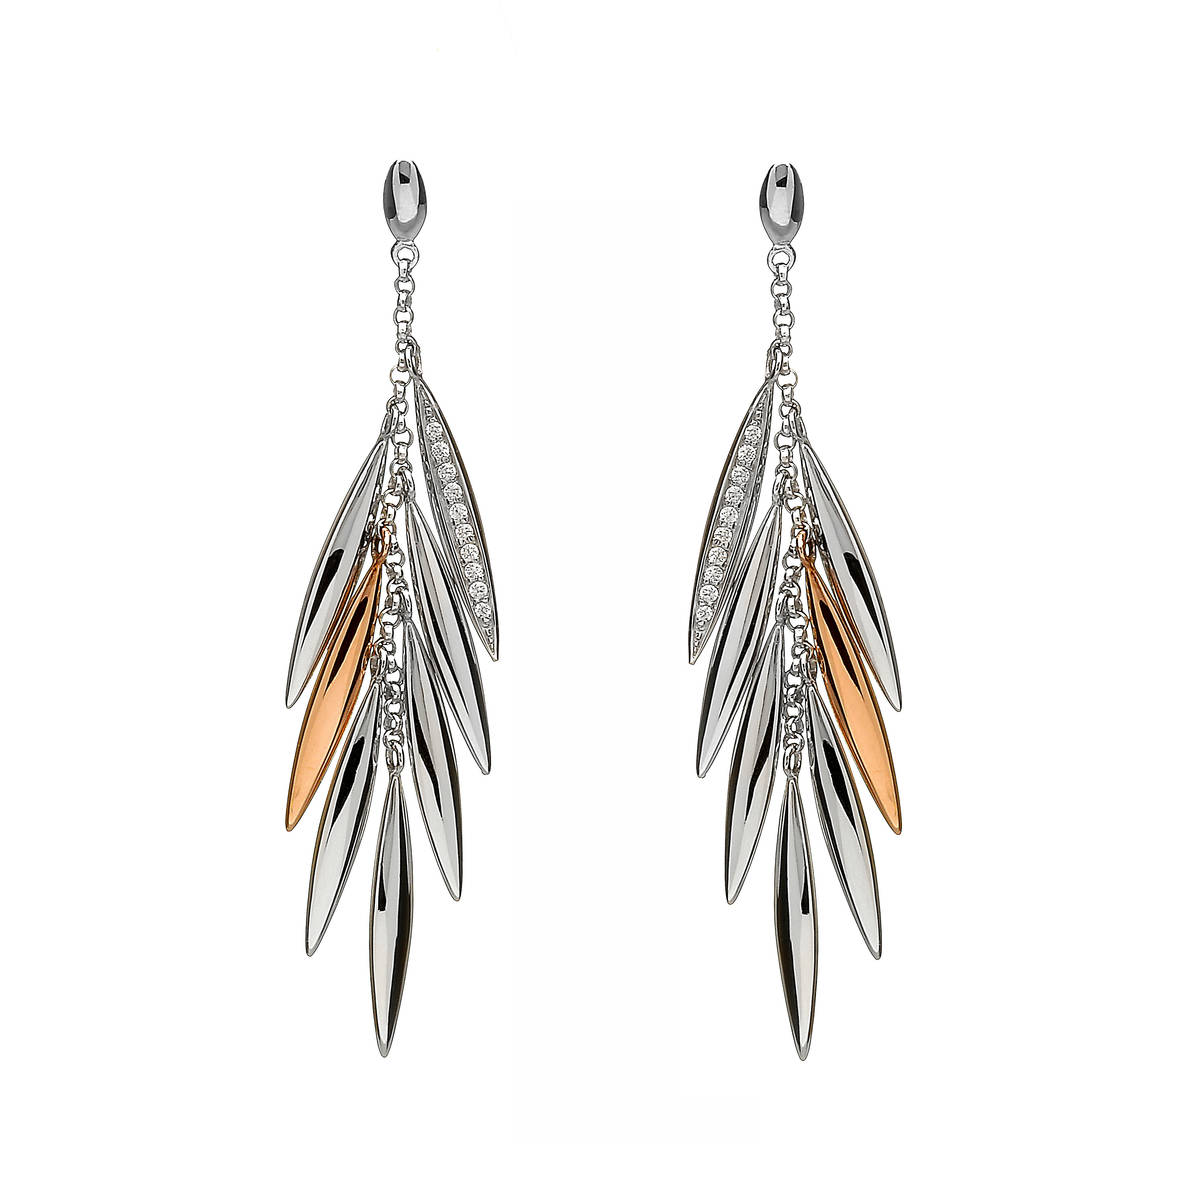 House of Lor silver/rose gold czfeather drop earrings1 feather on each made from rare Irish golddwpck/wtpck